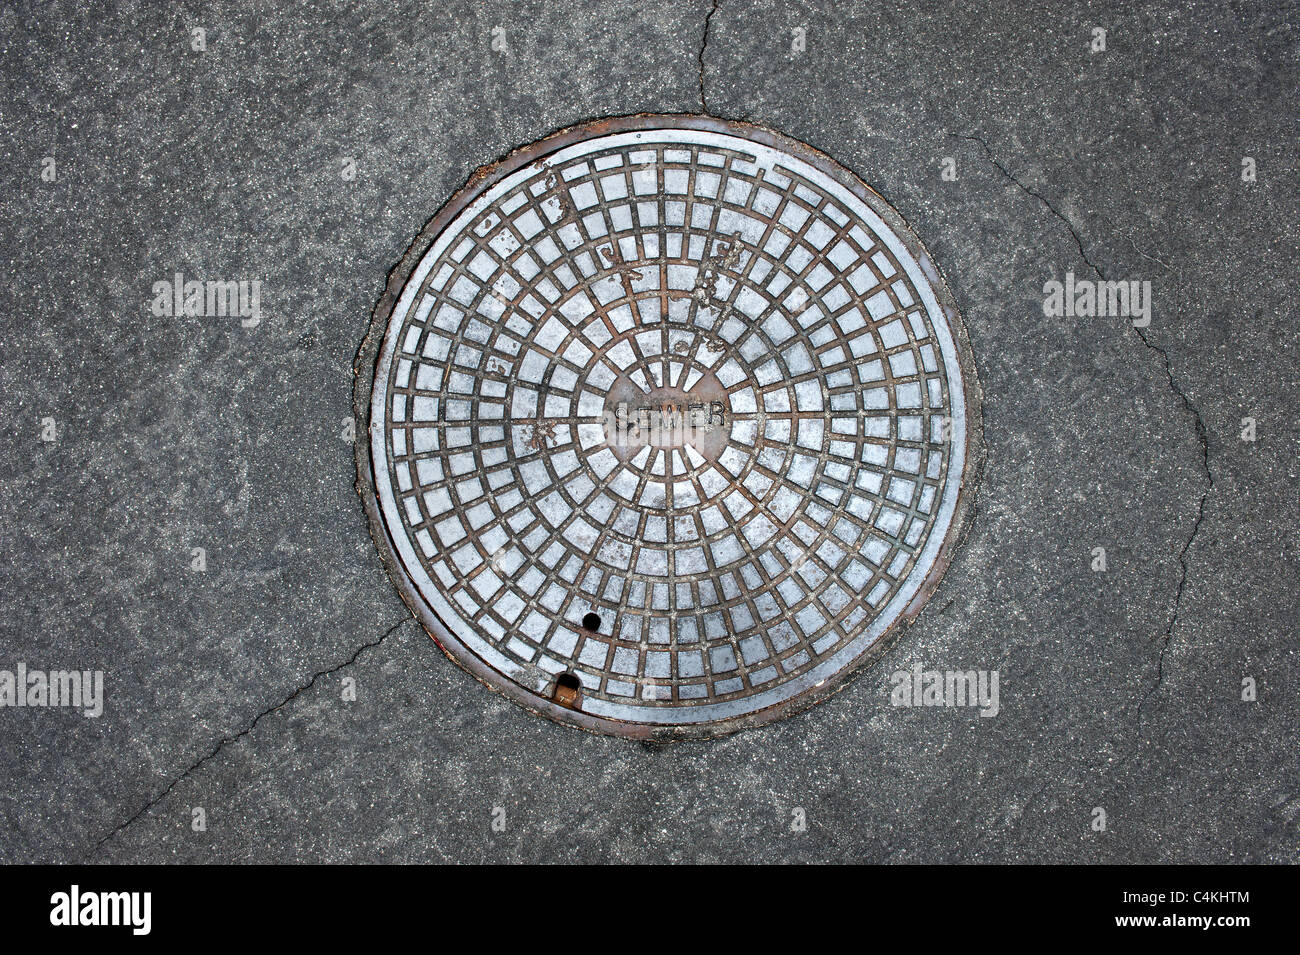 An old sewer manhole cover surrounded by an asphalt street - Stock Image